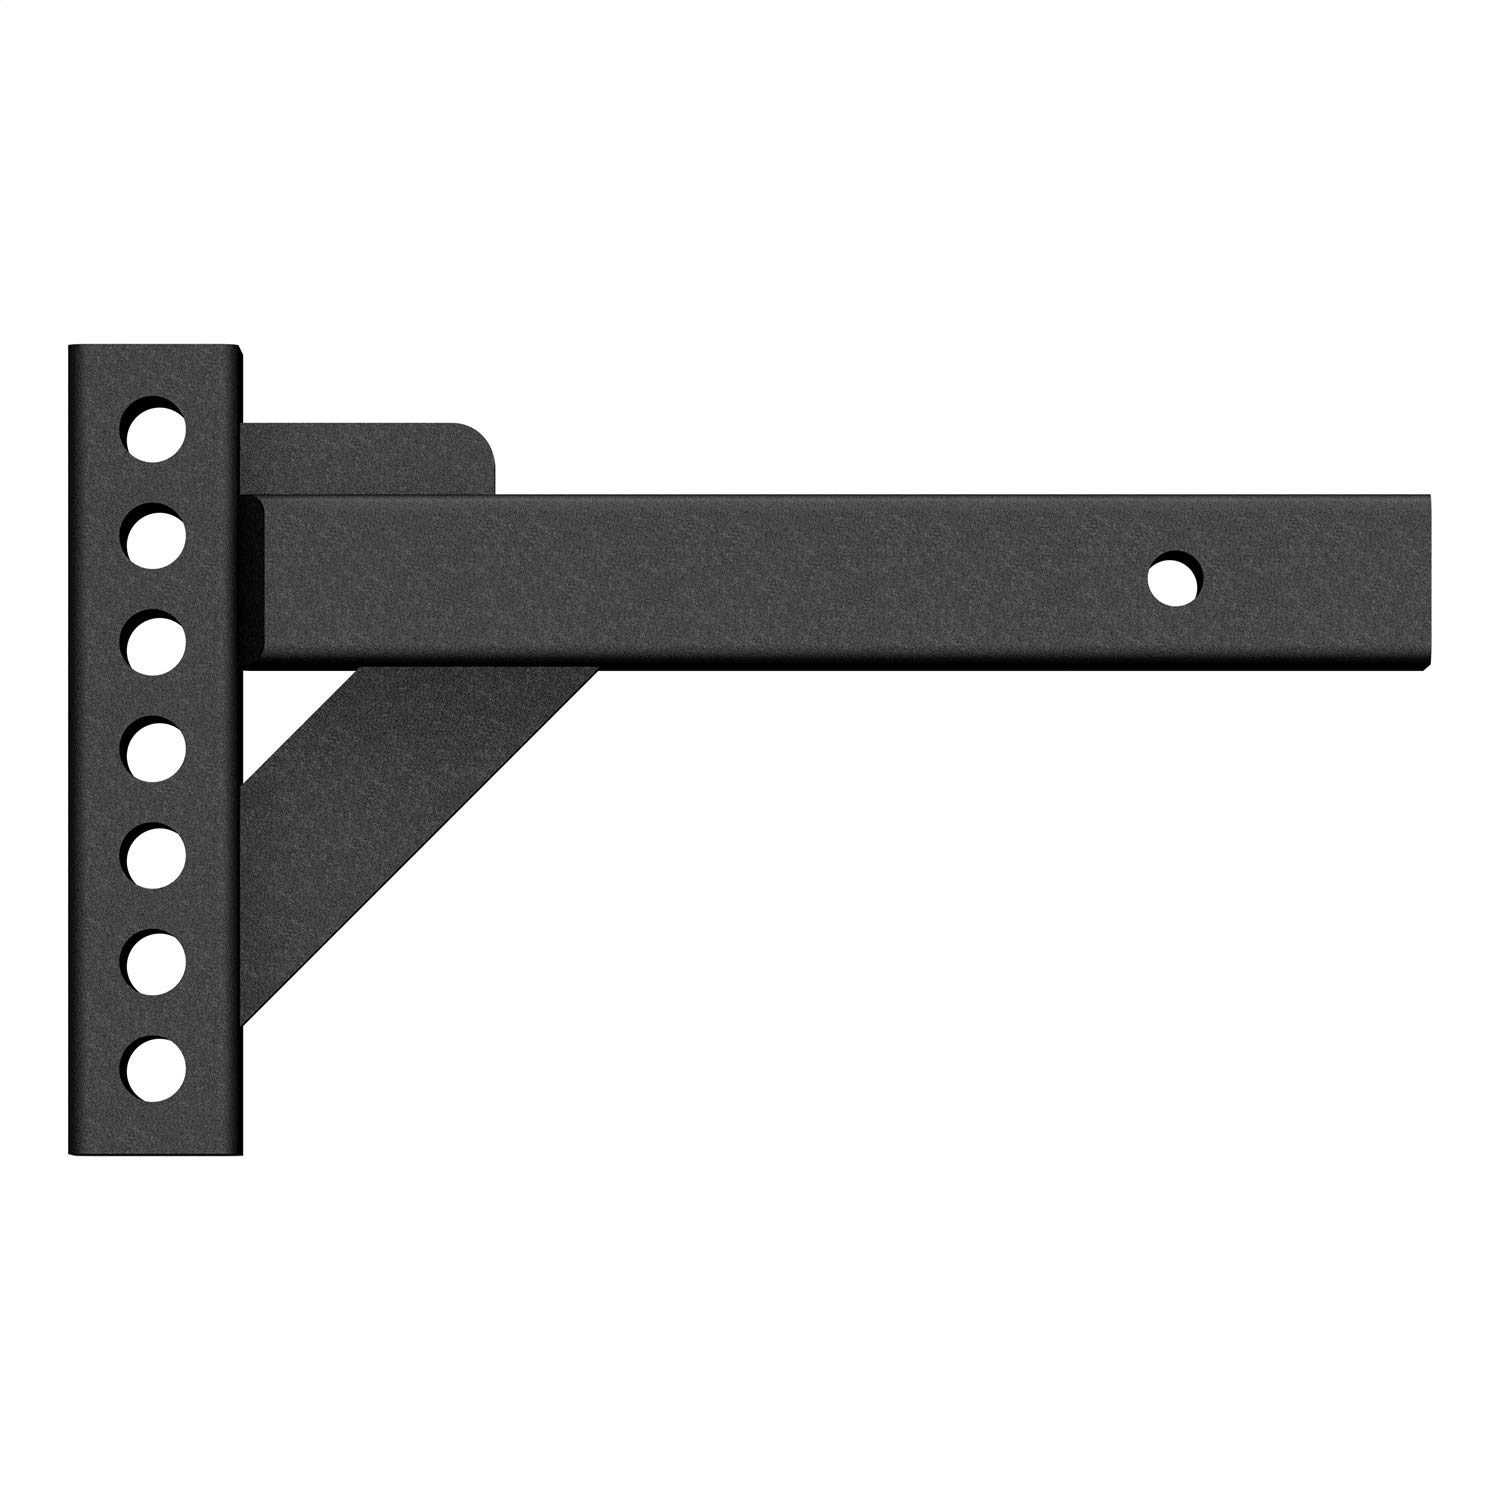 CURT 17102 Adj Hitch Bar 14 In Length Curt Manufacturing